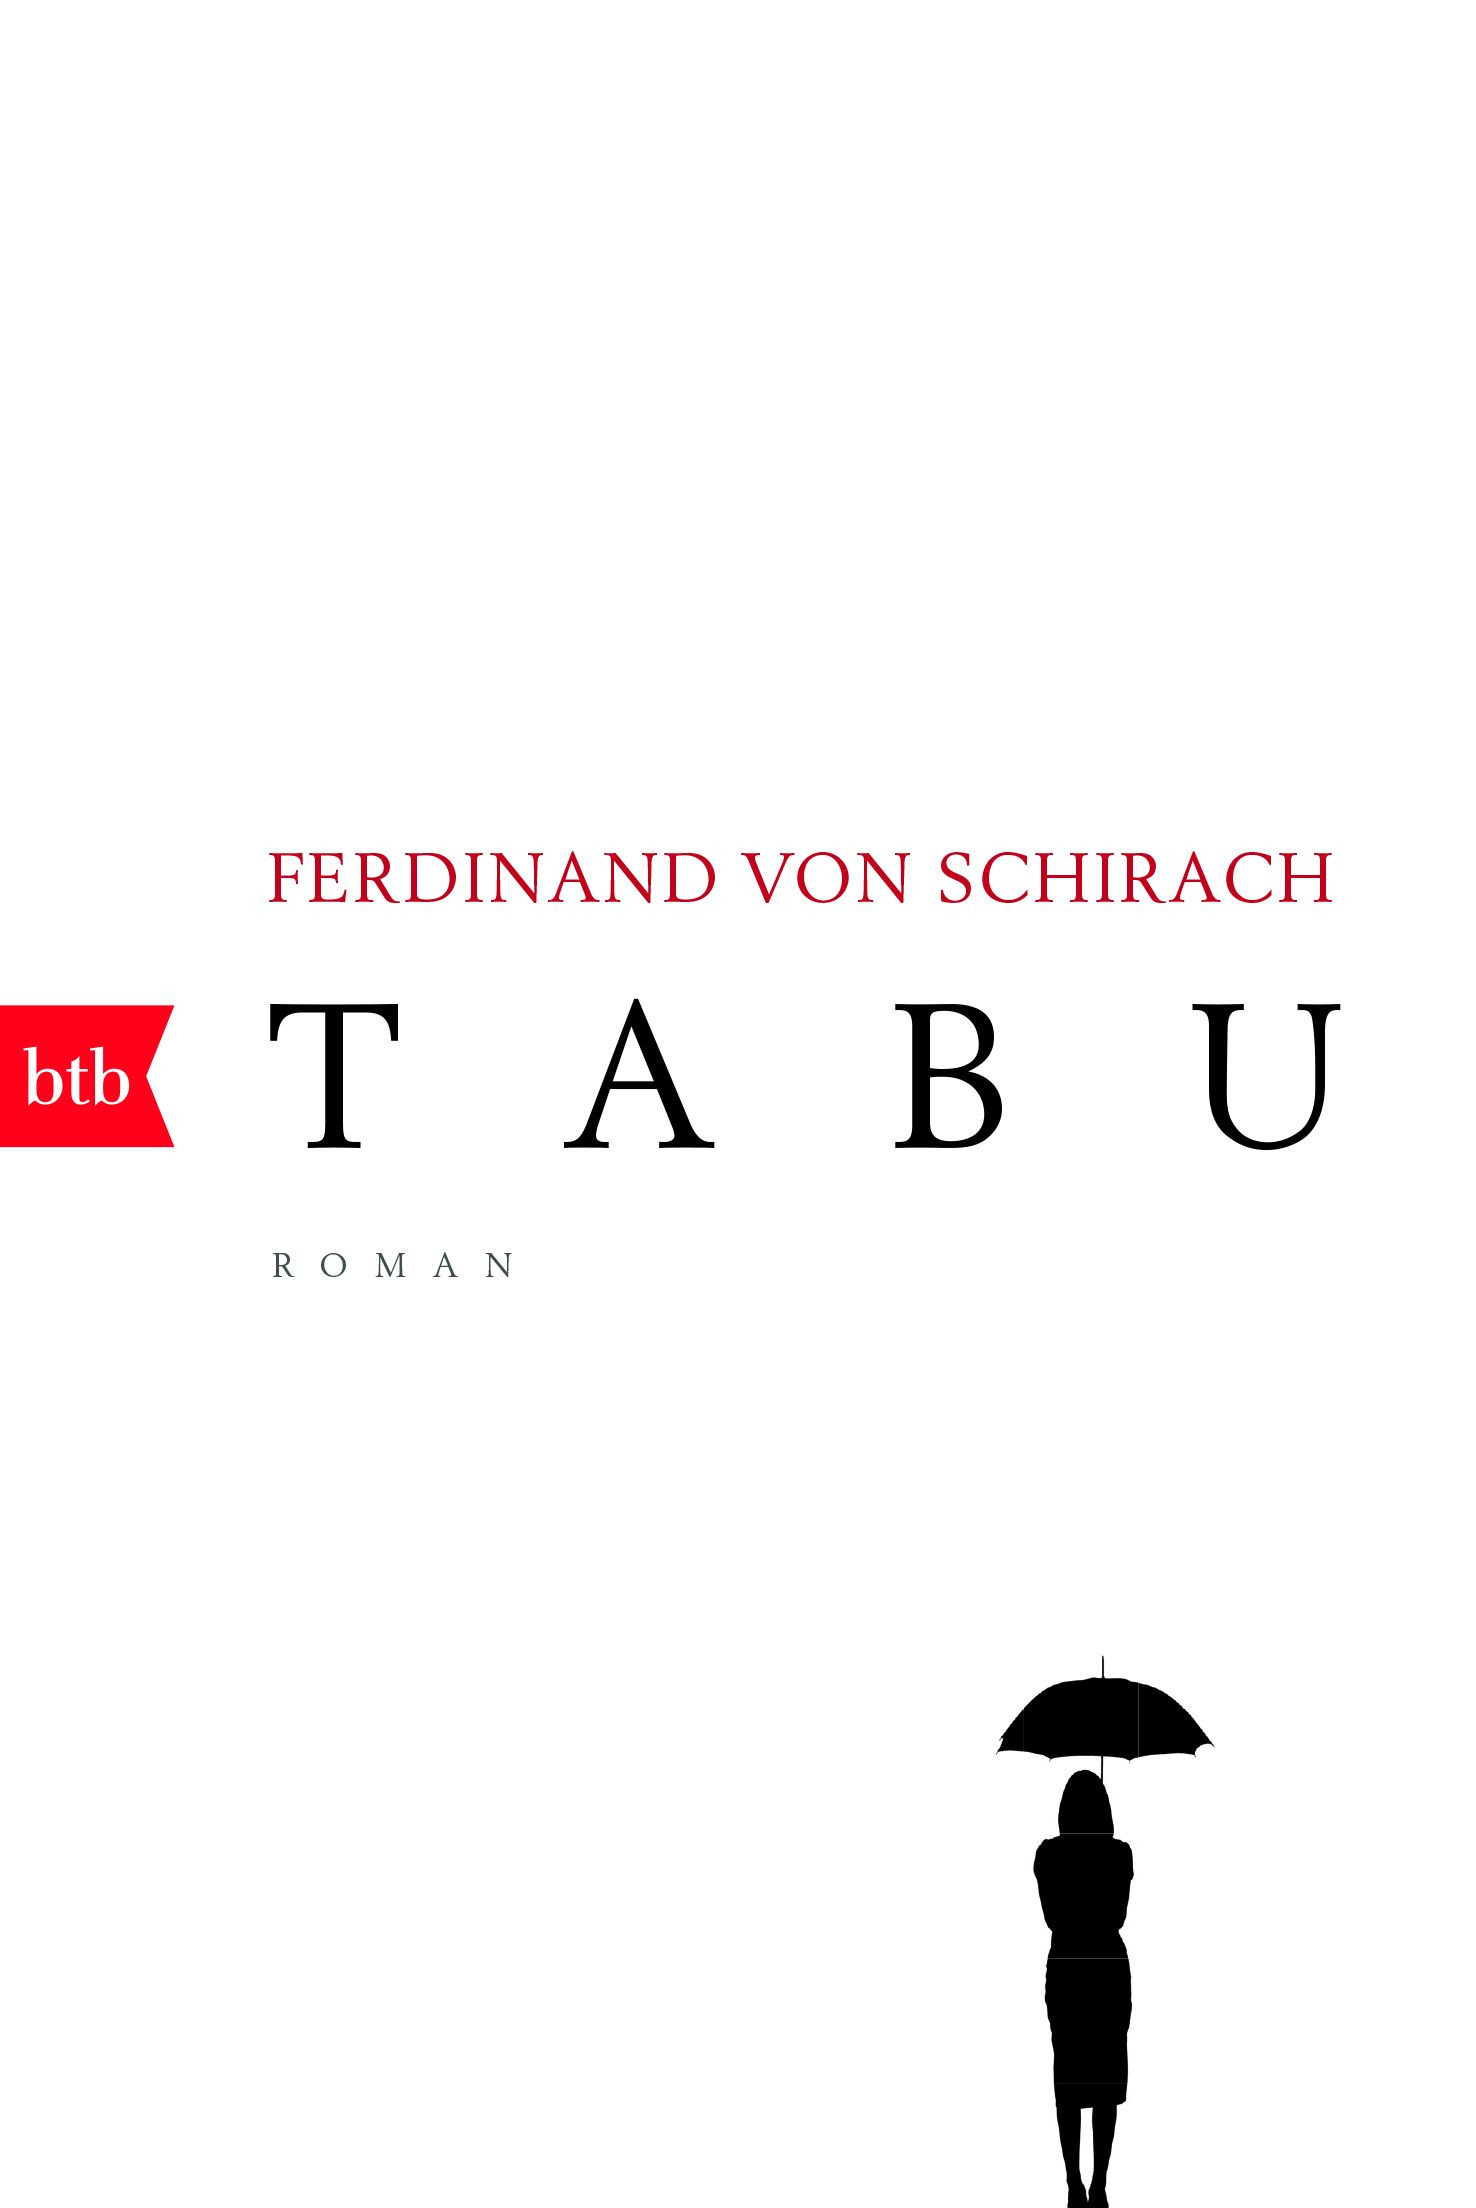 https://www.randomhouse.de/content/edition/covervoila_hires/von_Schirach_FTabu_171769.jpg